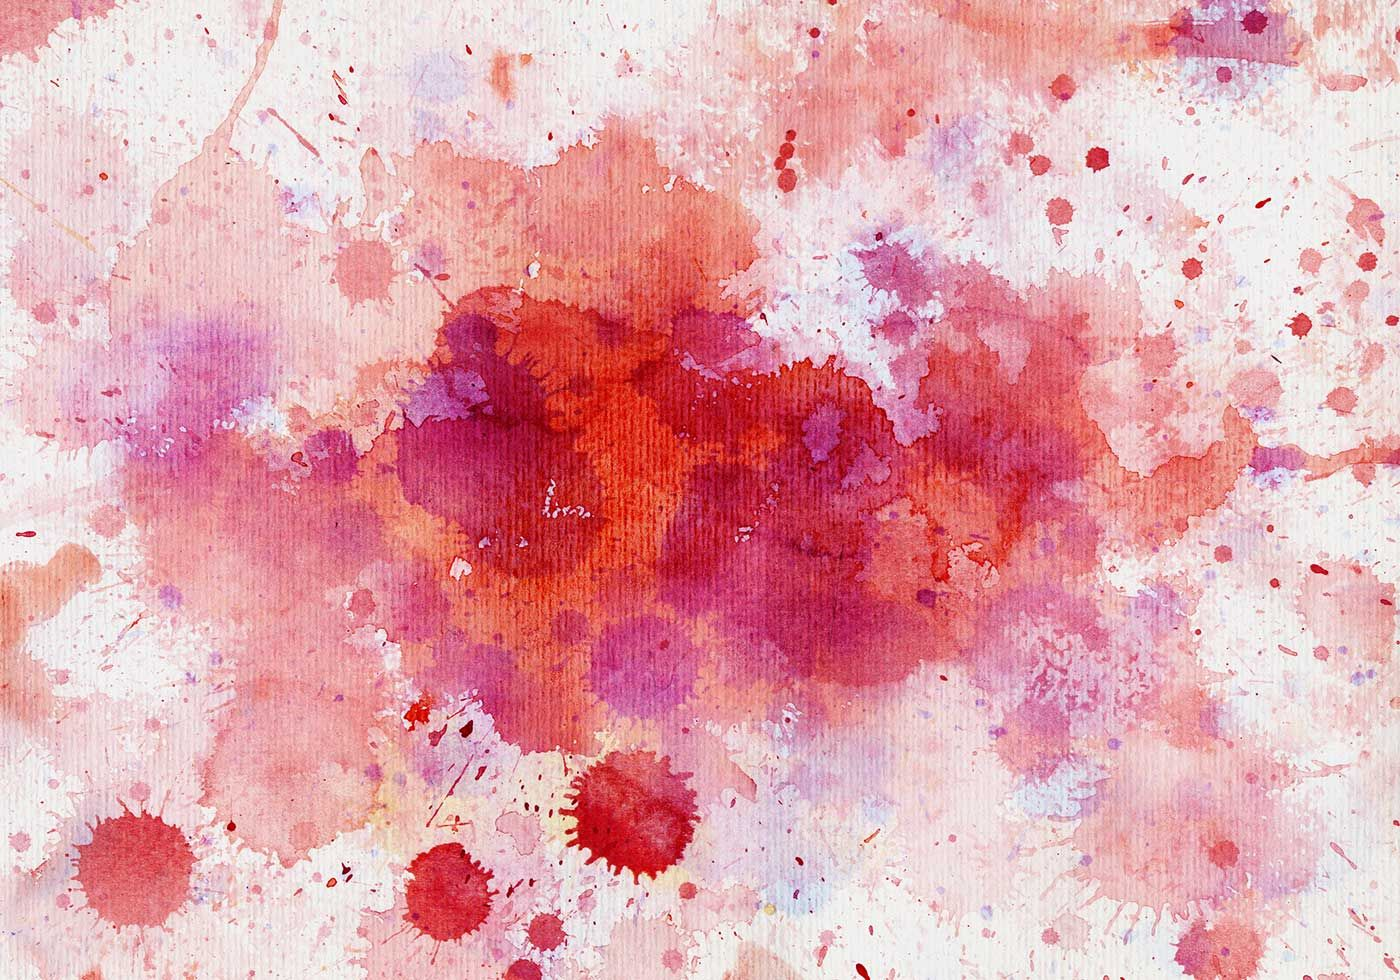 Watercolour Splats In Red N Pink Photoshop Textures Jpg 1400 980